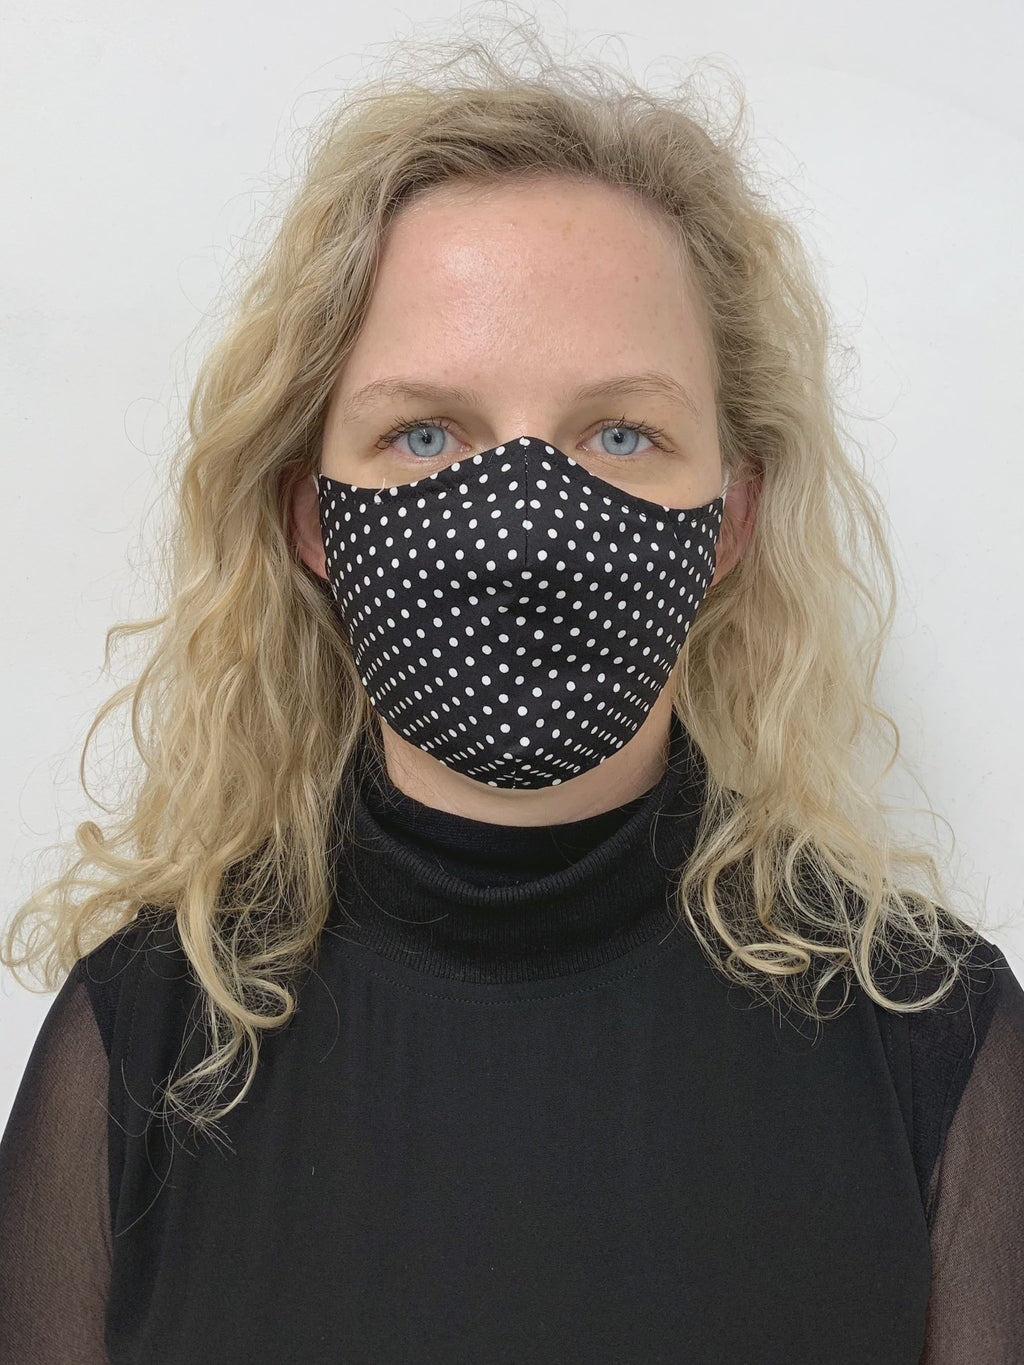 MINX Face Mask - Black Spot